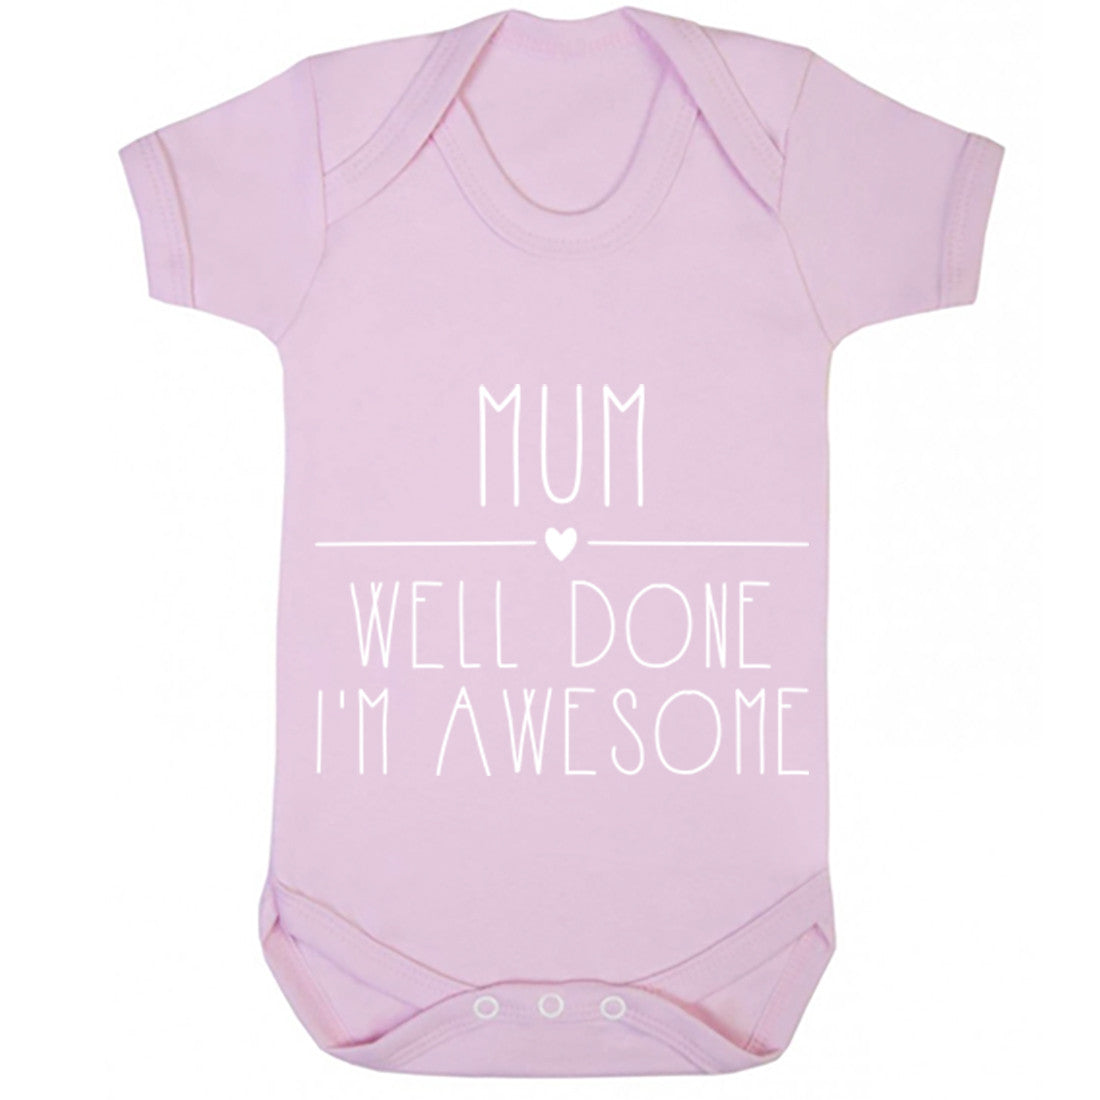 Mum Well Done I'm Awesome Baby Vest K0331 - Illustrated Identity Ltd.